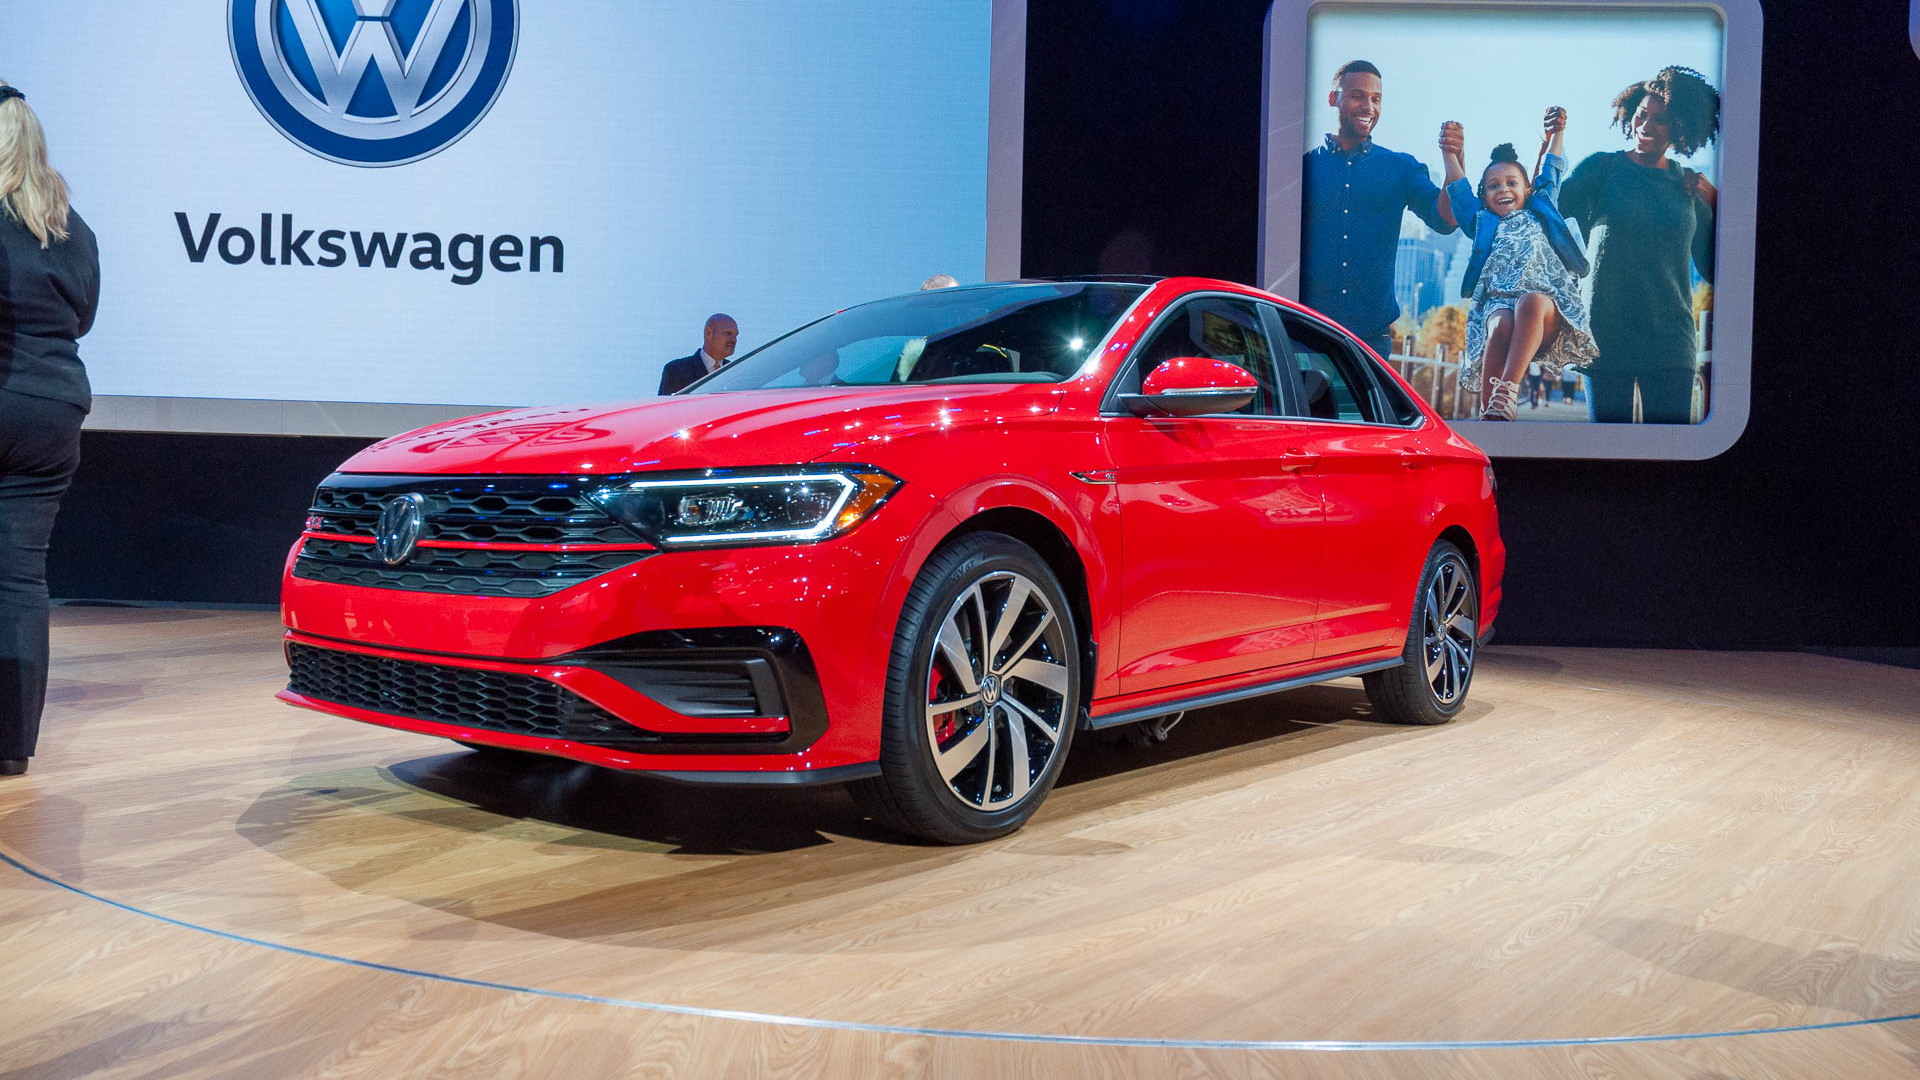 2019 VW Jetta GLI arrives with GTI and Golf R hand-me-downs